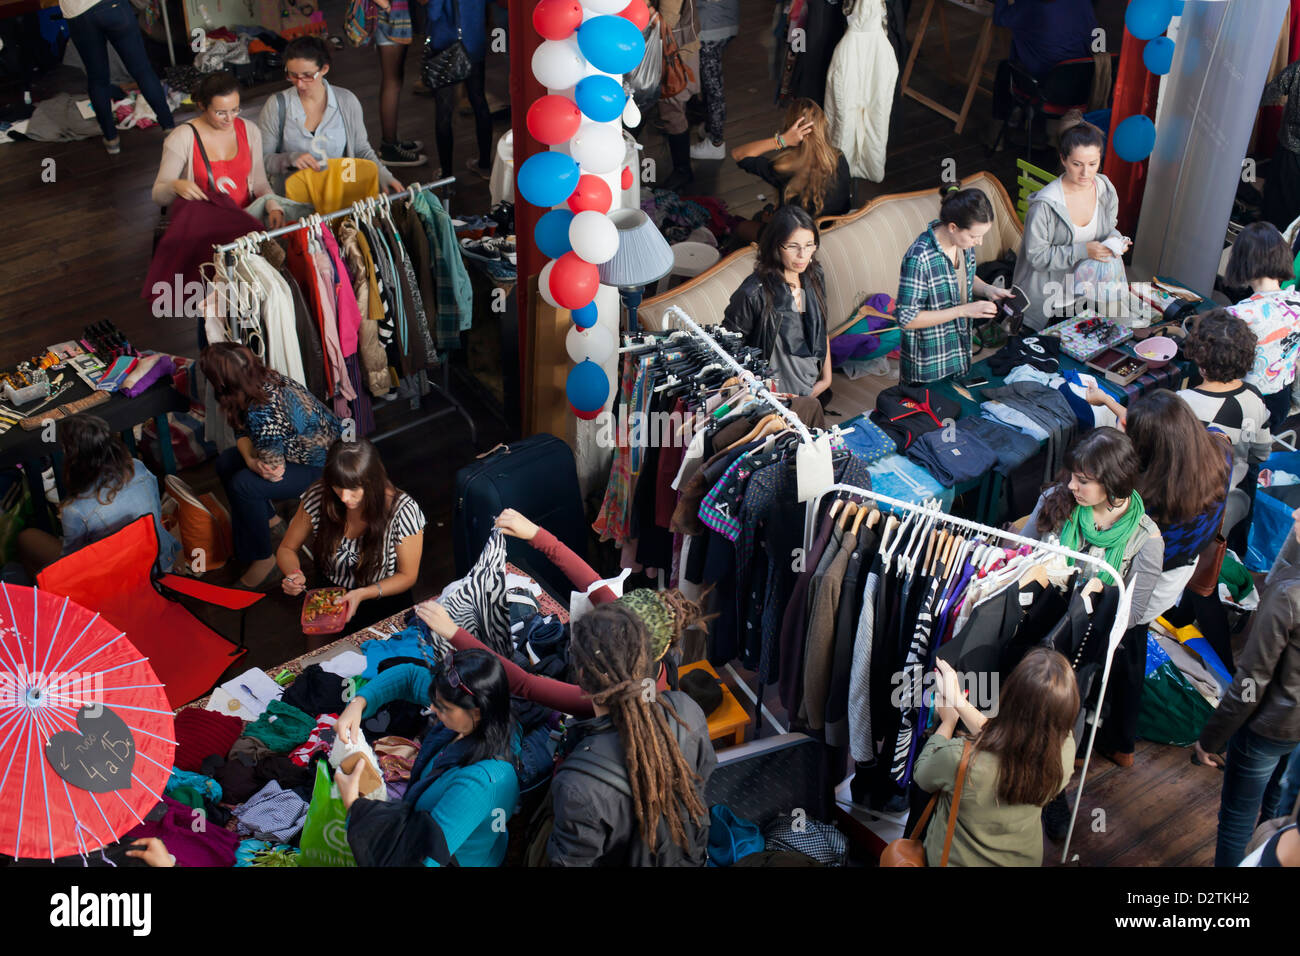 Second hand market at Taberna das Almas, Lisbon, Portugal. - Stock Image